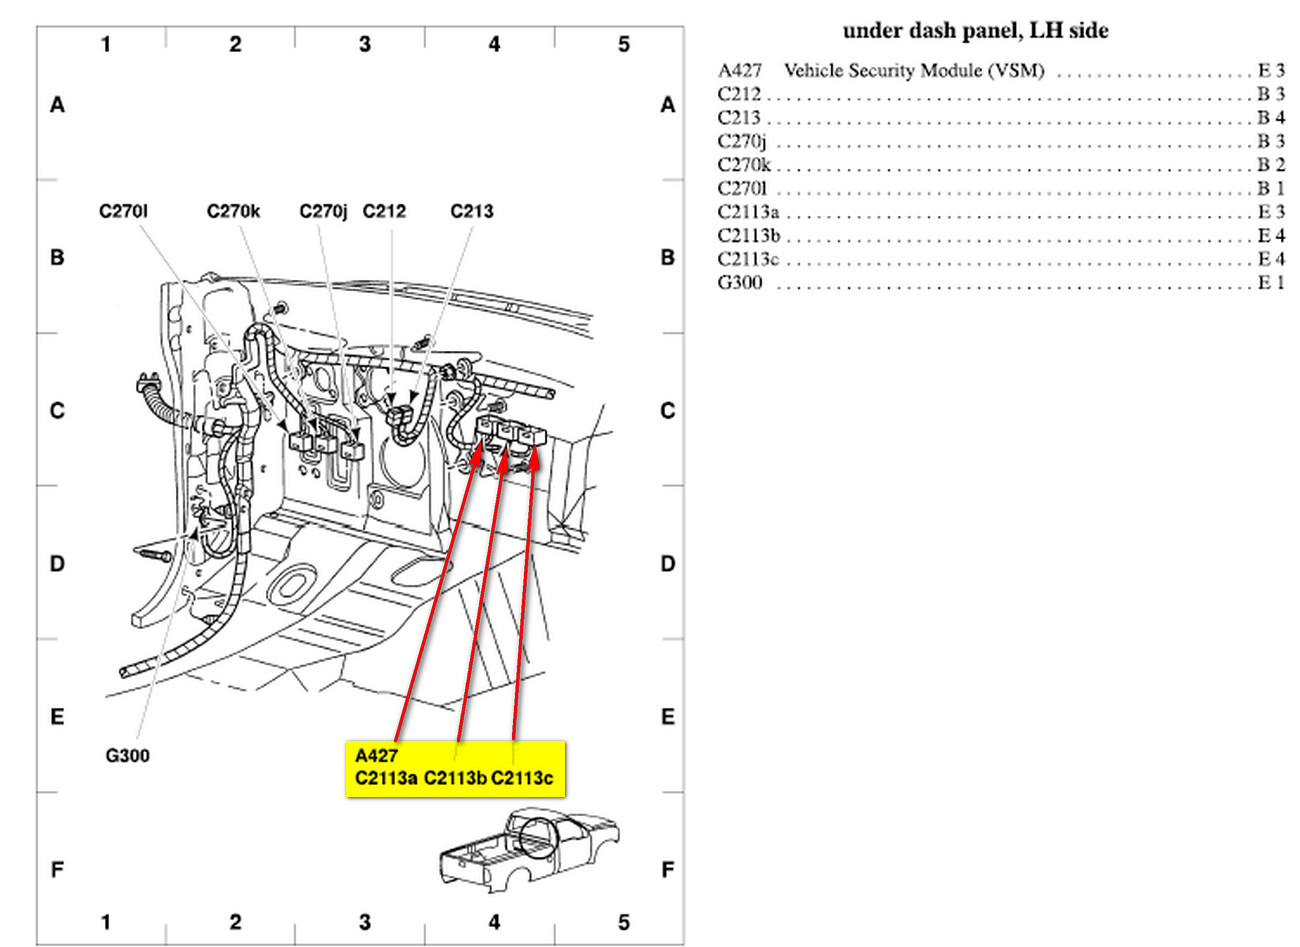 2007 Ford F350 Wiring Diagram Another Blog About F250 Stereo Harness Fuse Box Location 27 Images Diesel